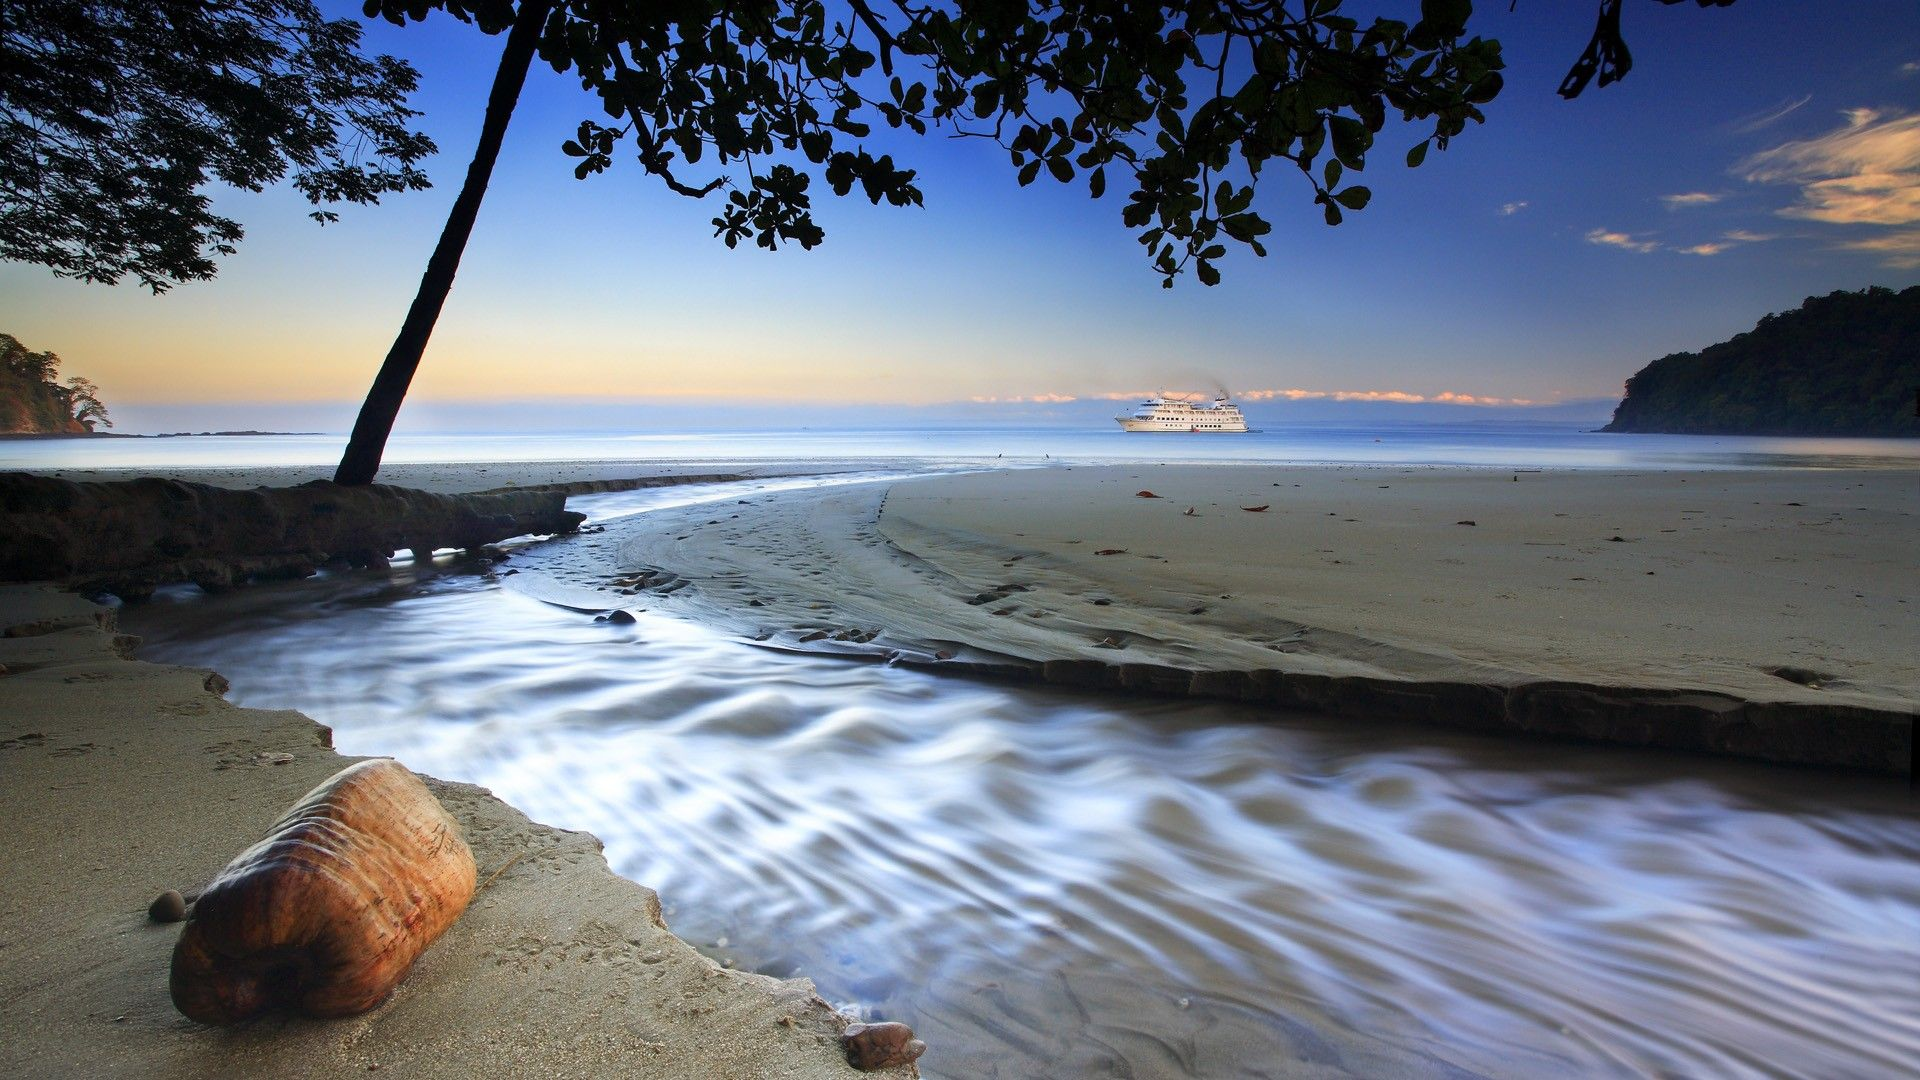 Populaire fond ecran paysage nature plage hd punta arena costa rica  TM14